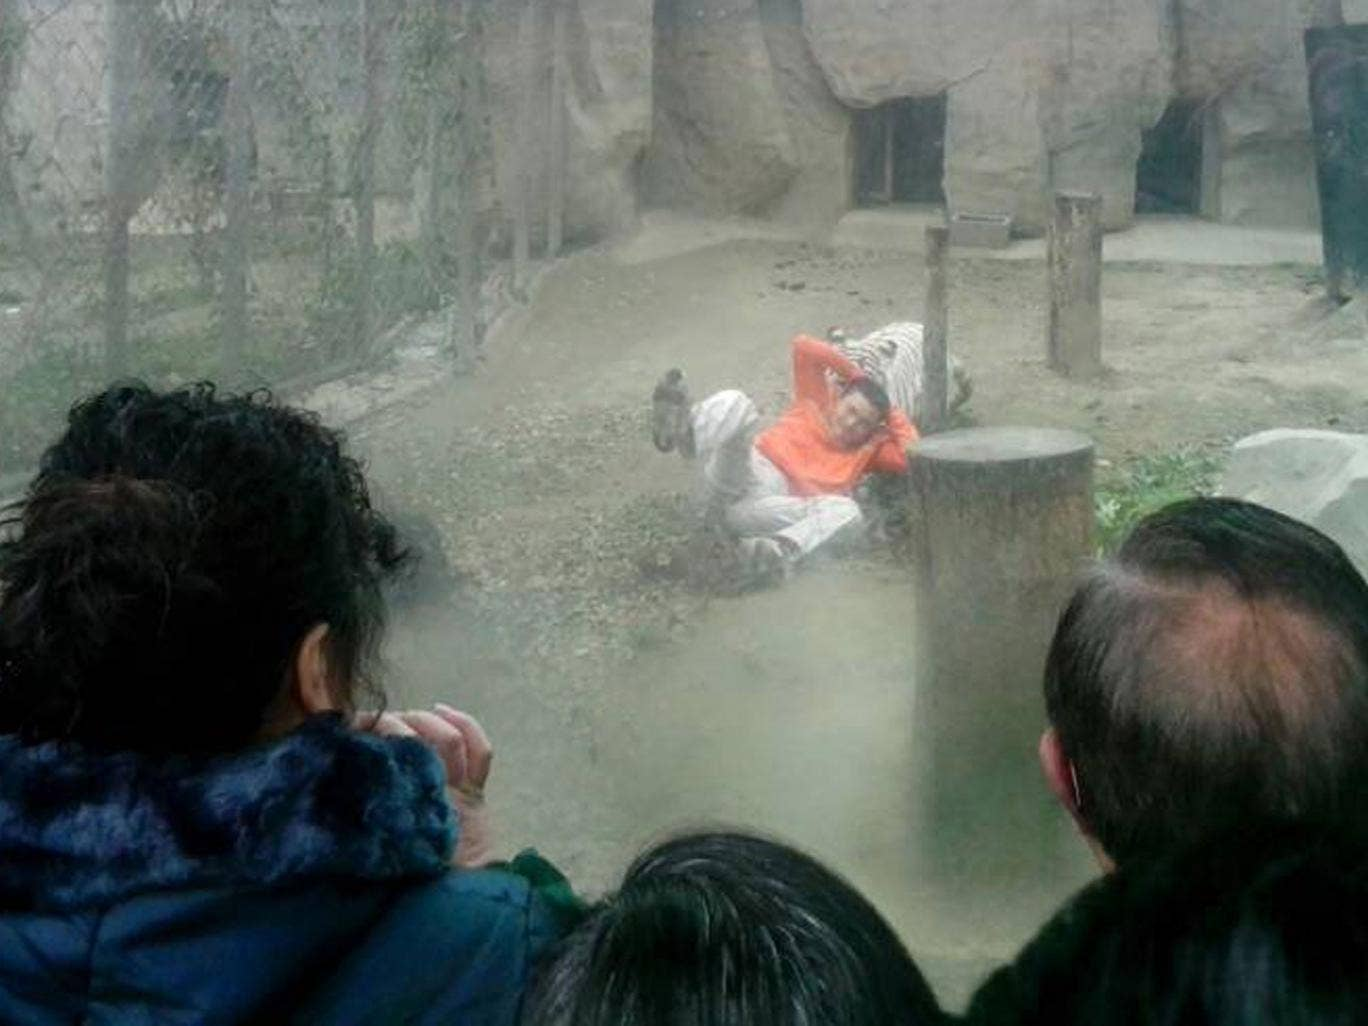 Yang Jinhai, 27, told reporters he jumped into an enclosure at Chengdu Zoo, Sichuan, because he wanted to 'feed the tigers'